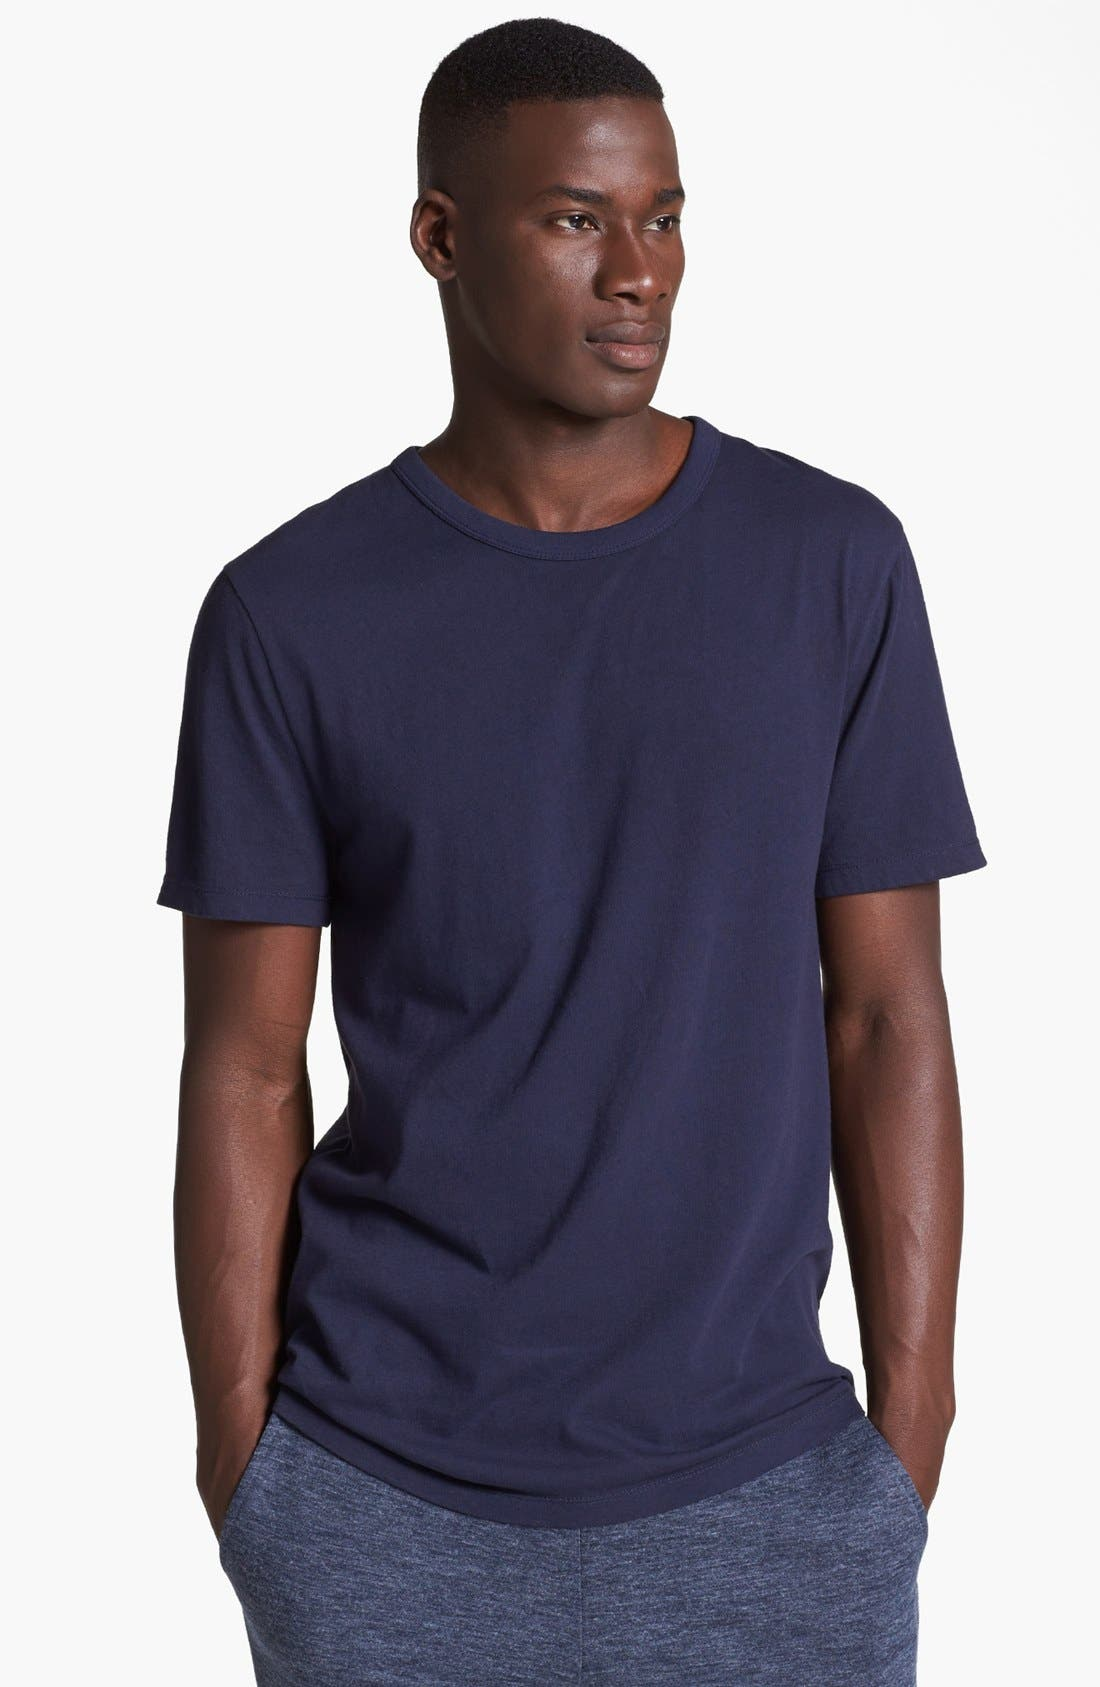 Alternate Image 1 Selected - T by Alexander Wang Classic Crewneck T-Shirt